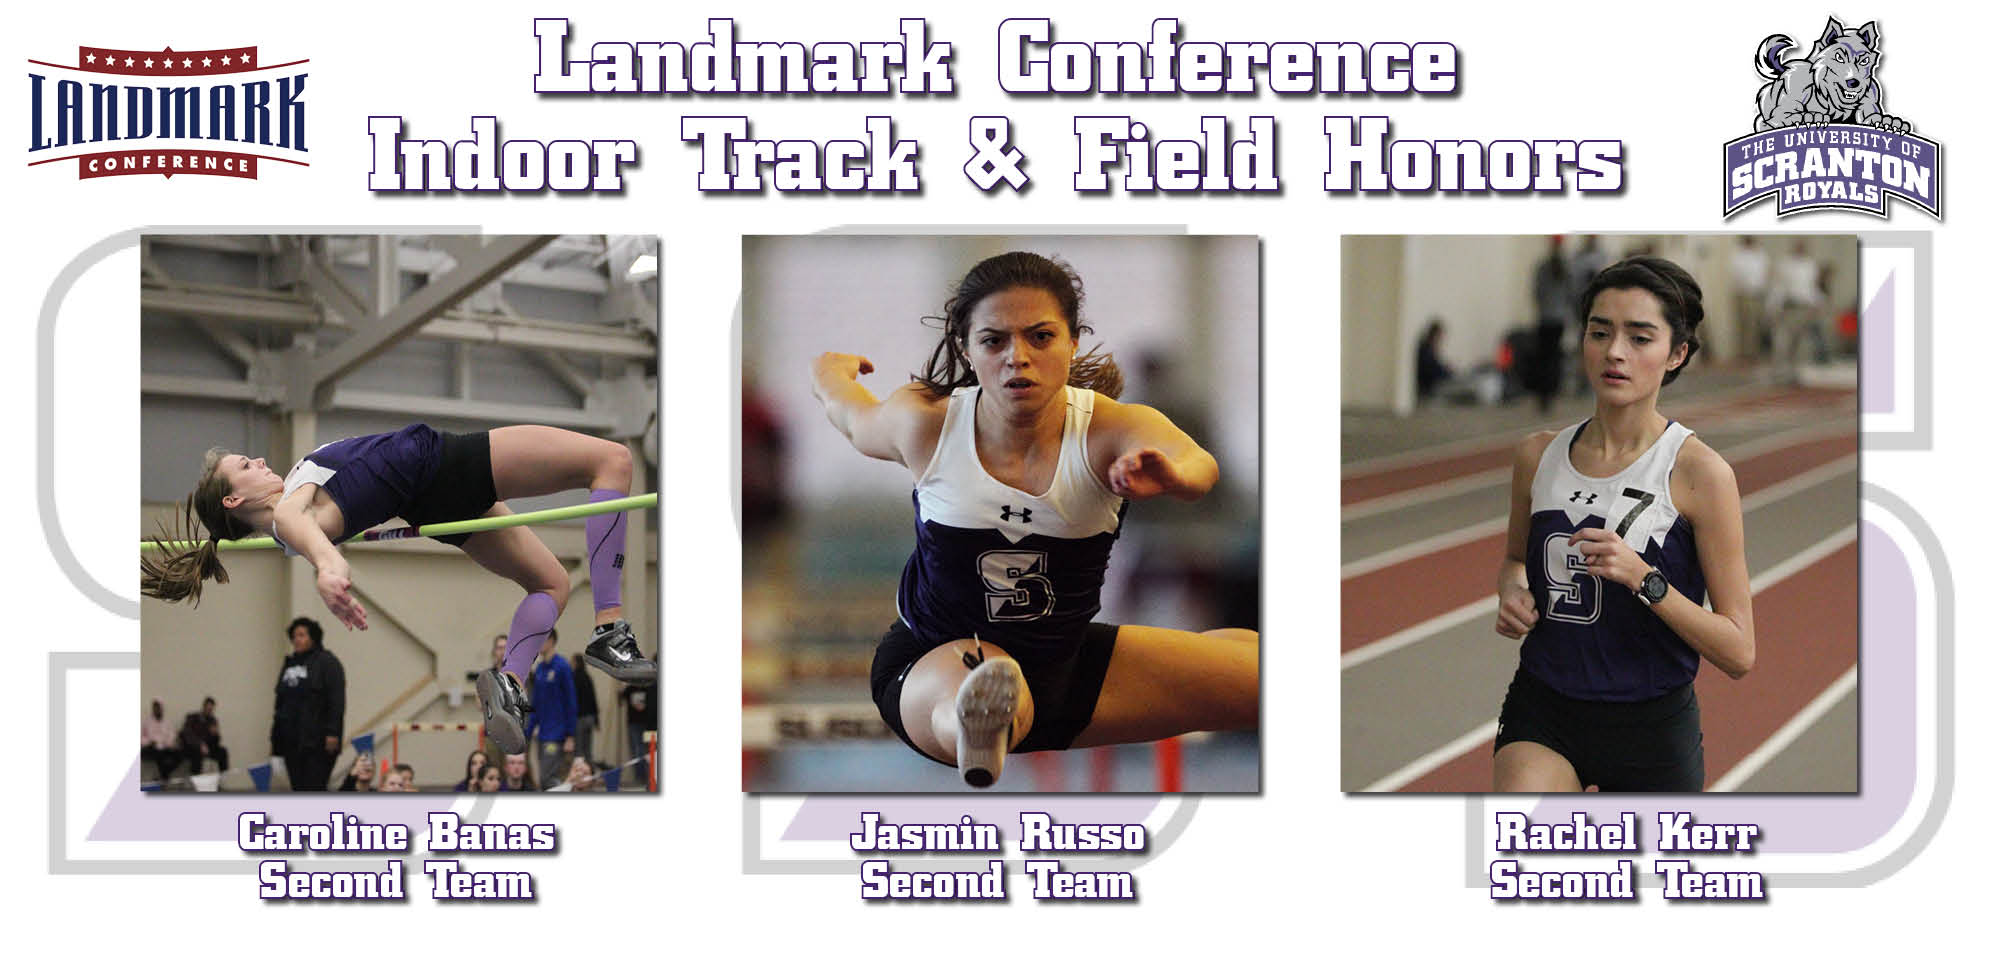 Banas, Russo, and Kerr Collect All-Landmark Conference Honors